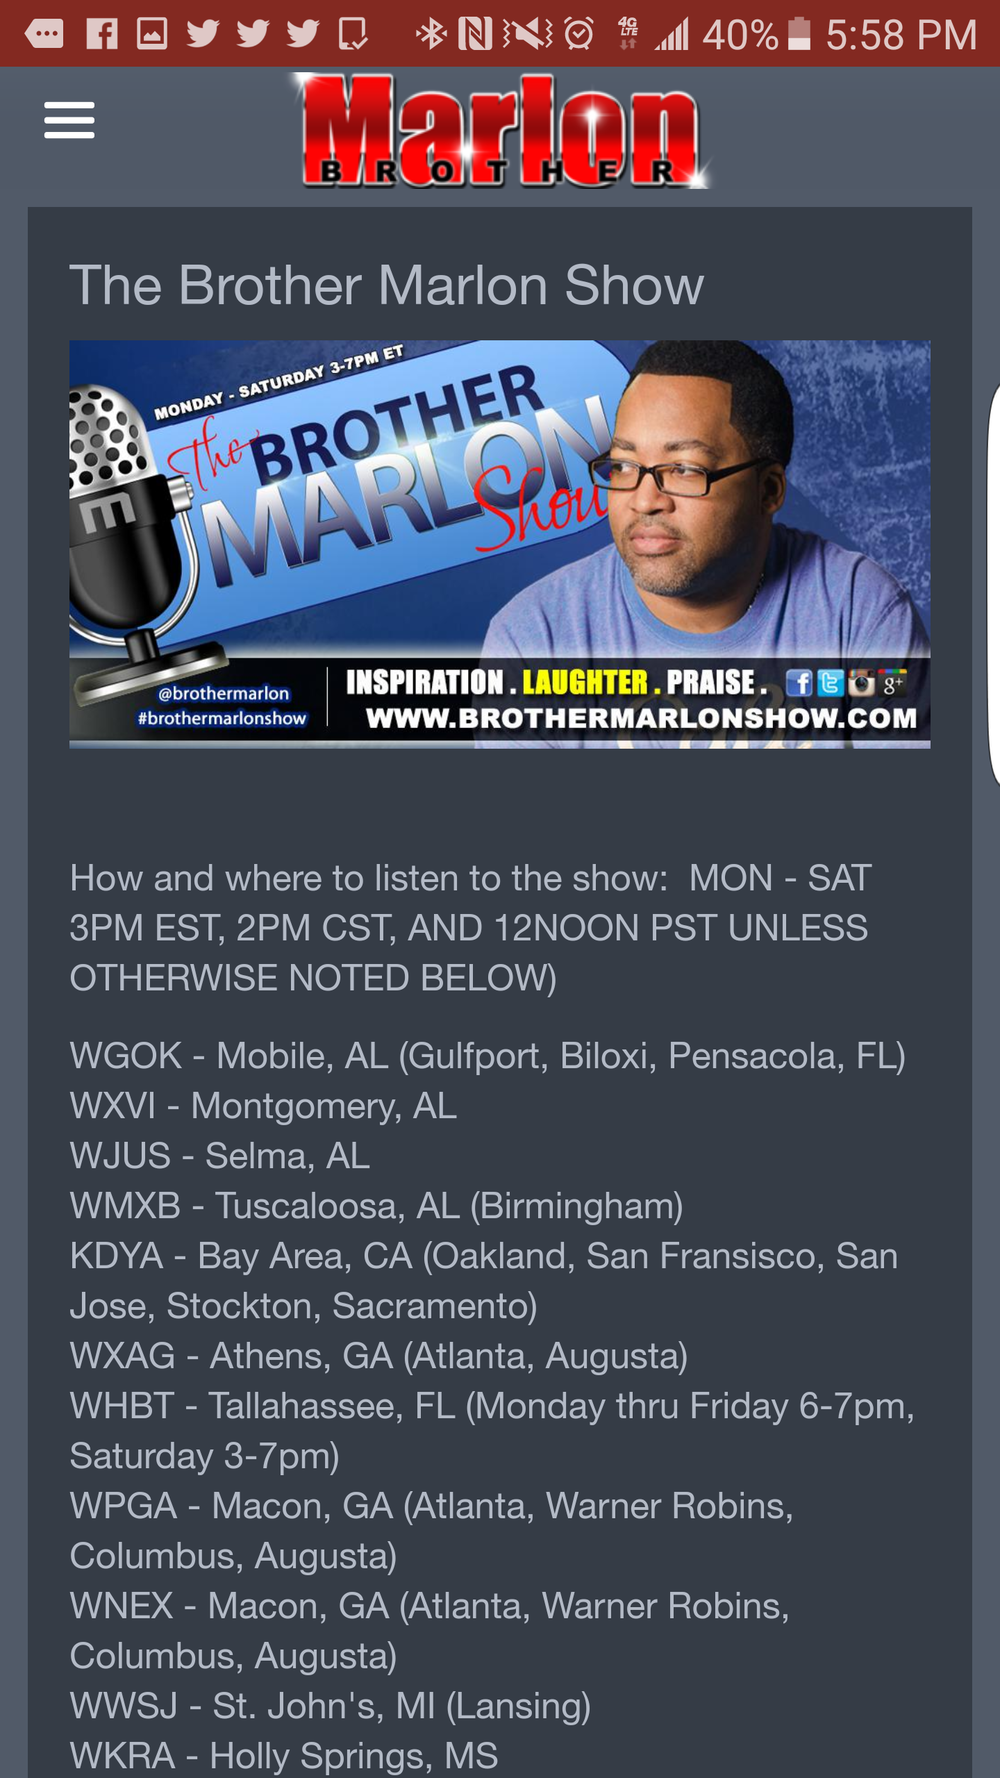 Brother Marlon Show Page: Listen Live, get info on the show, where to listen, etc.